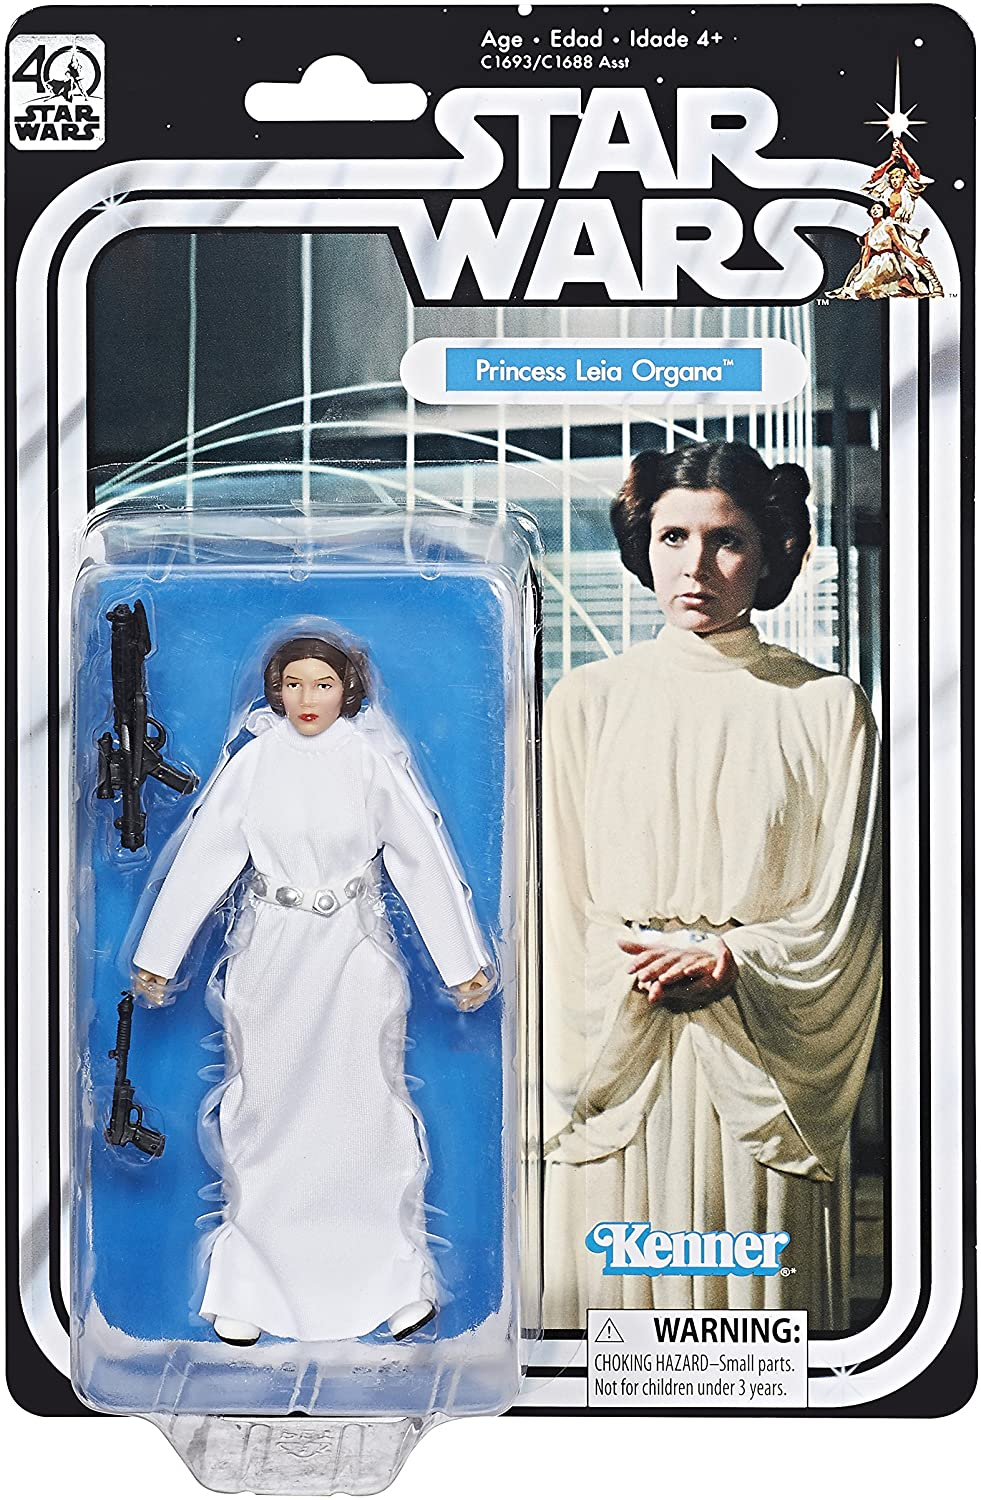 Star Wars The Black Series 40th Anniversary Princess Leia Organa 5.25 Inch Figure